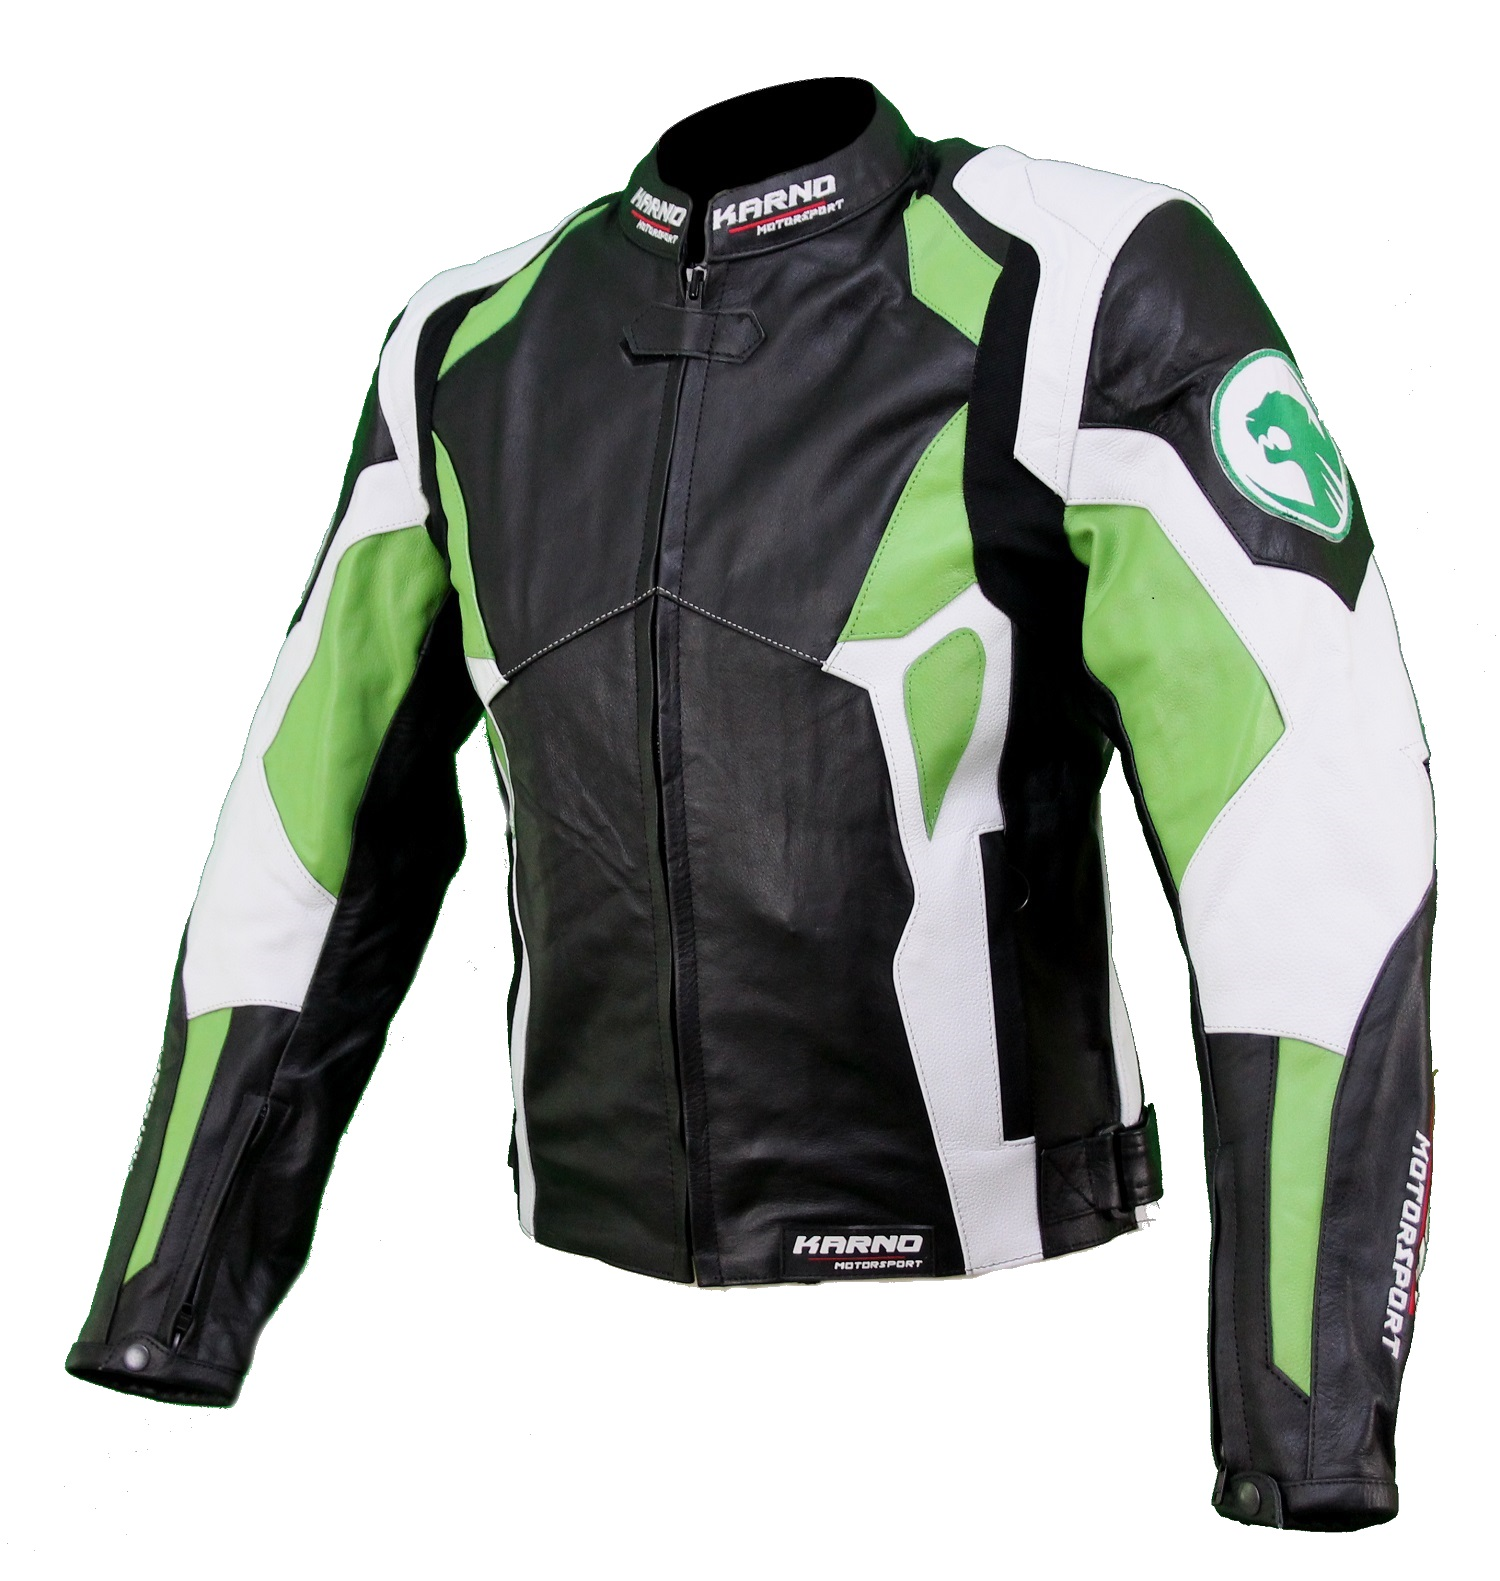 blouson moto blouson moto cuir karno motorsport. Black Bedroom Furniture Sets. Home Design Ideas